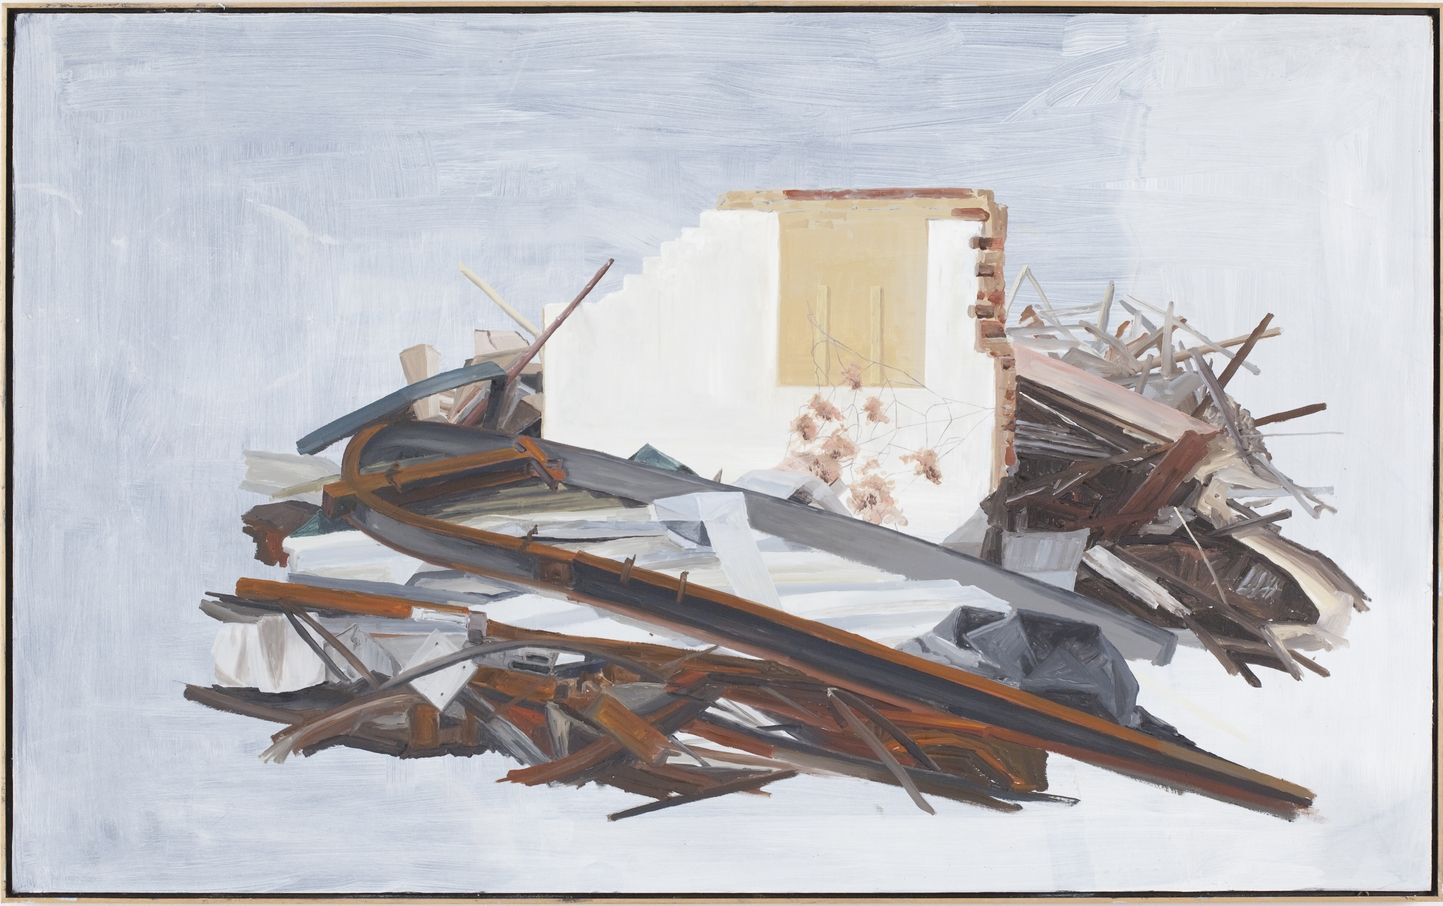 Demolition 2010 Oil on Board 102.5 x 64cm